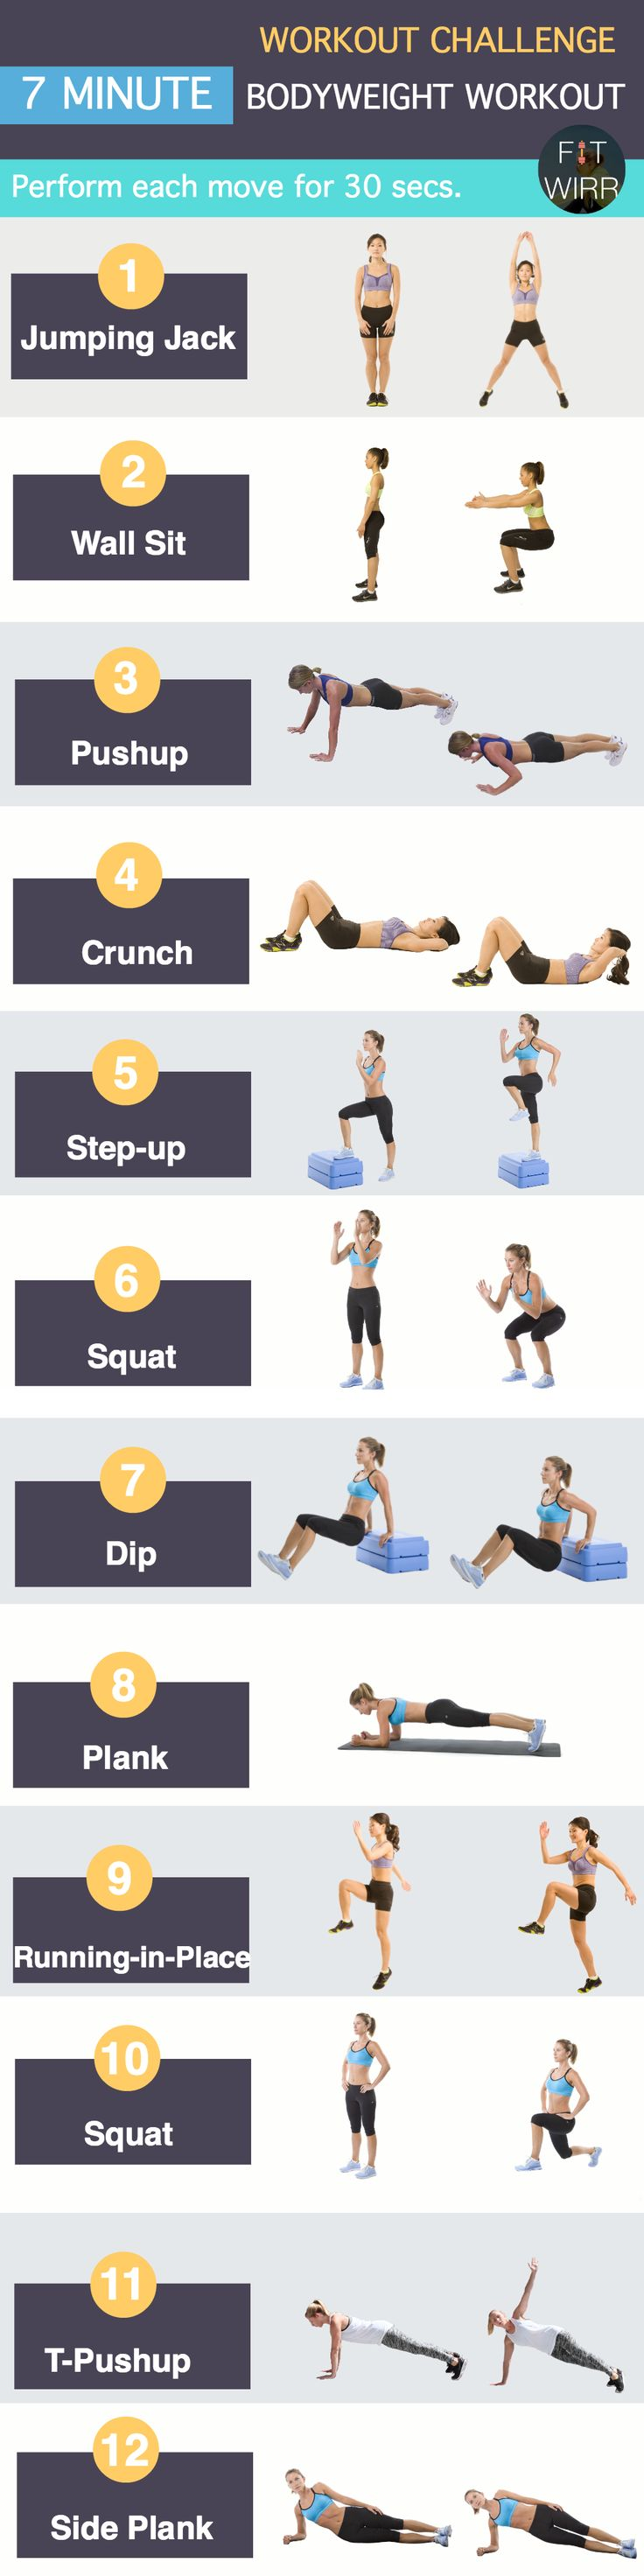 7 MINUTES of 12 EXERCISES BodyWeight HIIT Workout Routine... IS ALL U NEED... To BURN Calories.. During + AFTER your Workout... vs. 20-30 minutes to workout